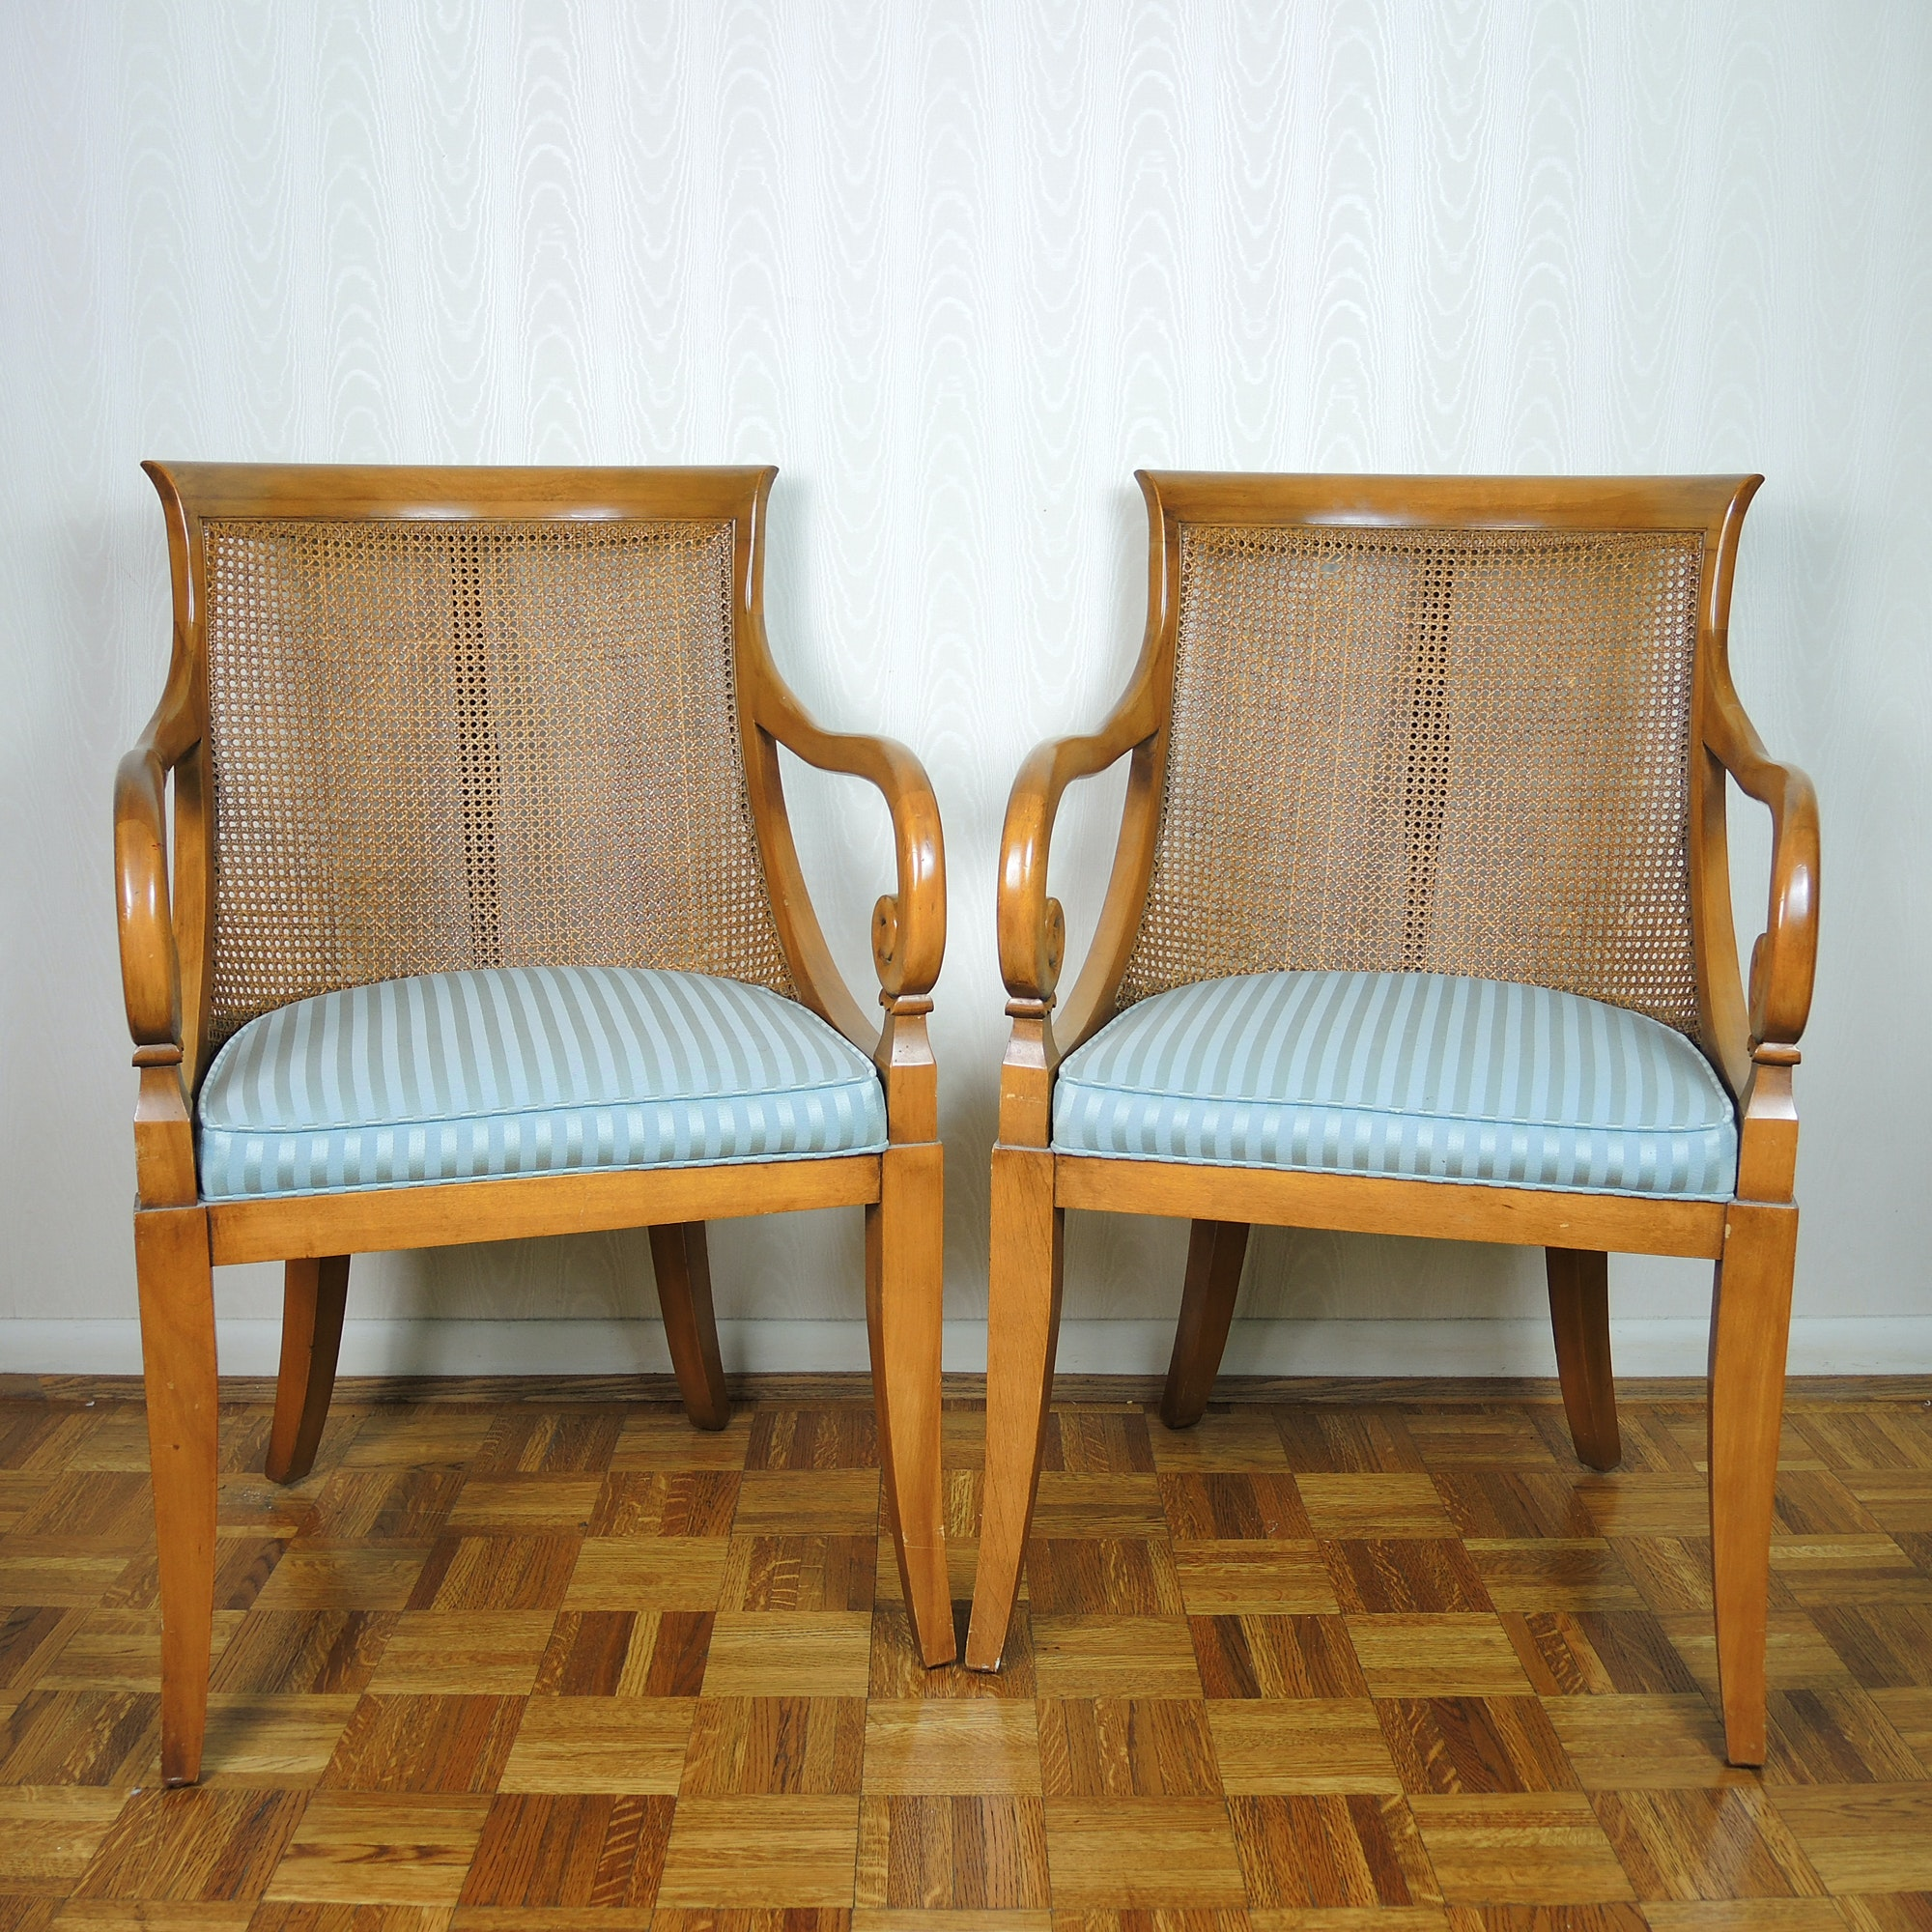 Pair of Cane-Back Chairs